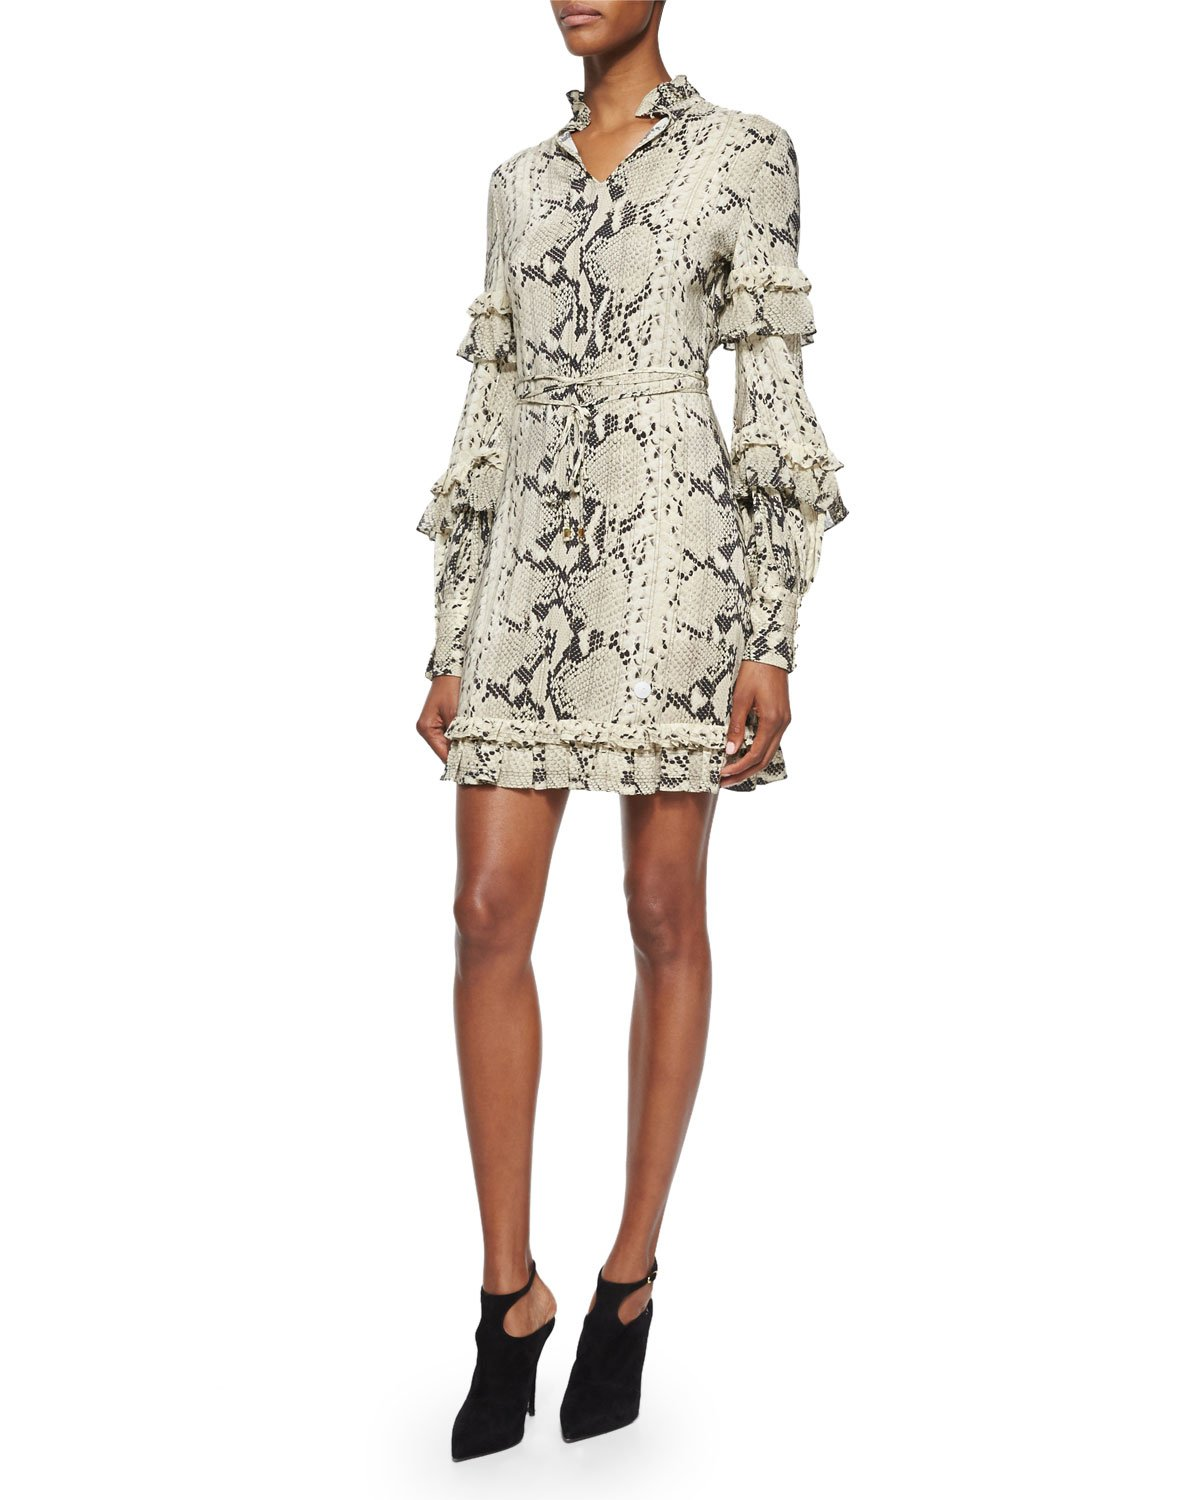 660e719a7654 Roberto Cavalli Long-sleeve Snake-print Ruffle Dress - Lyst